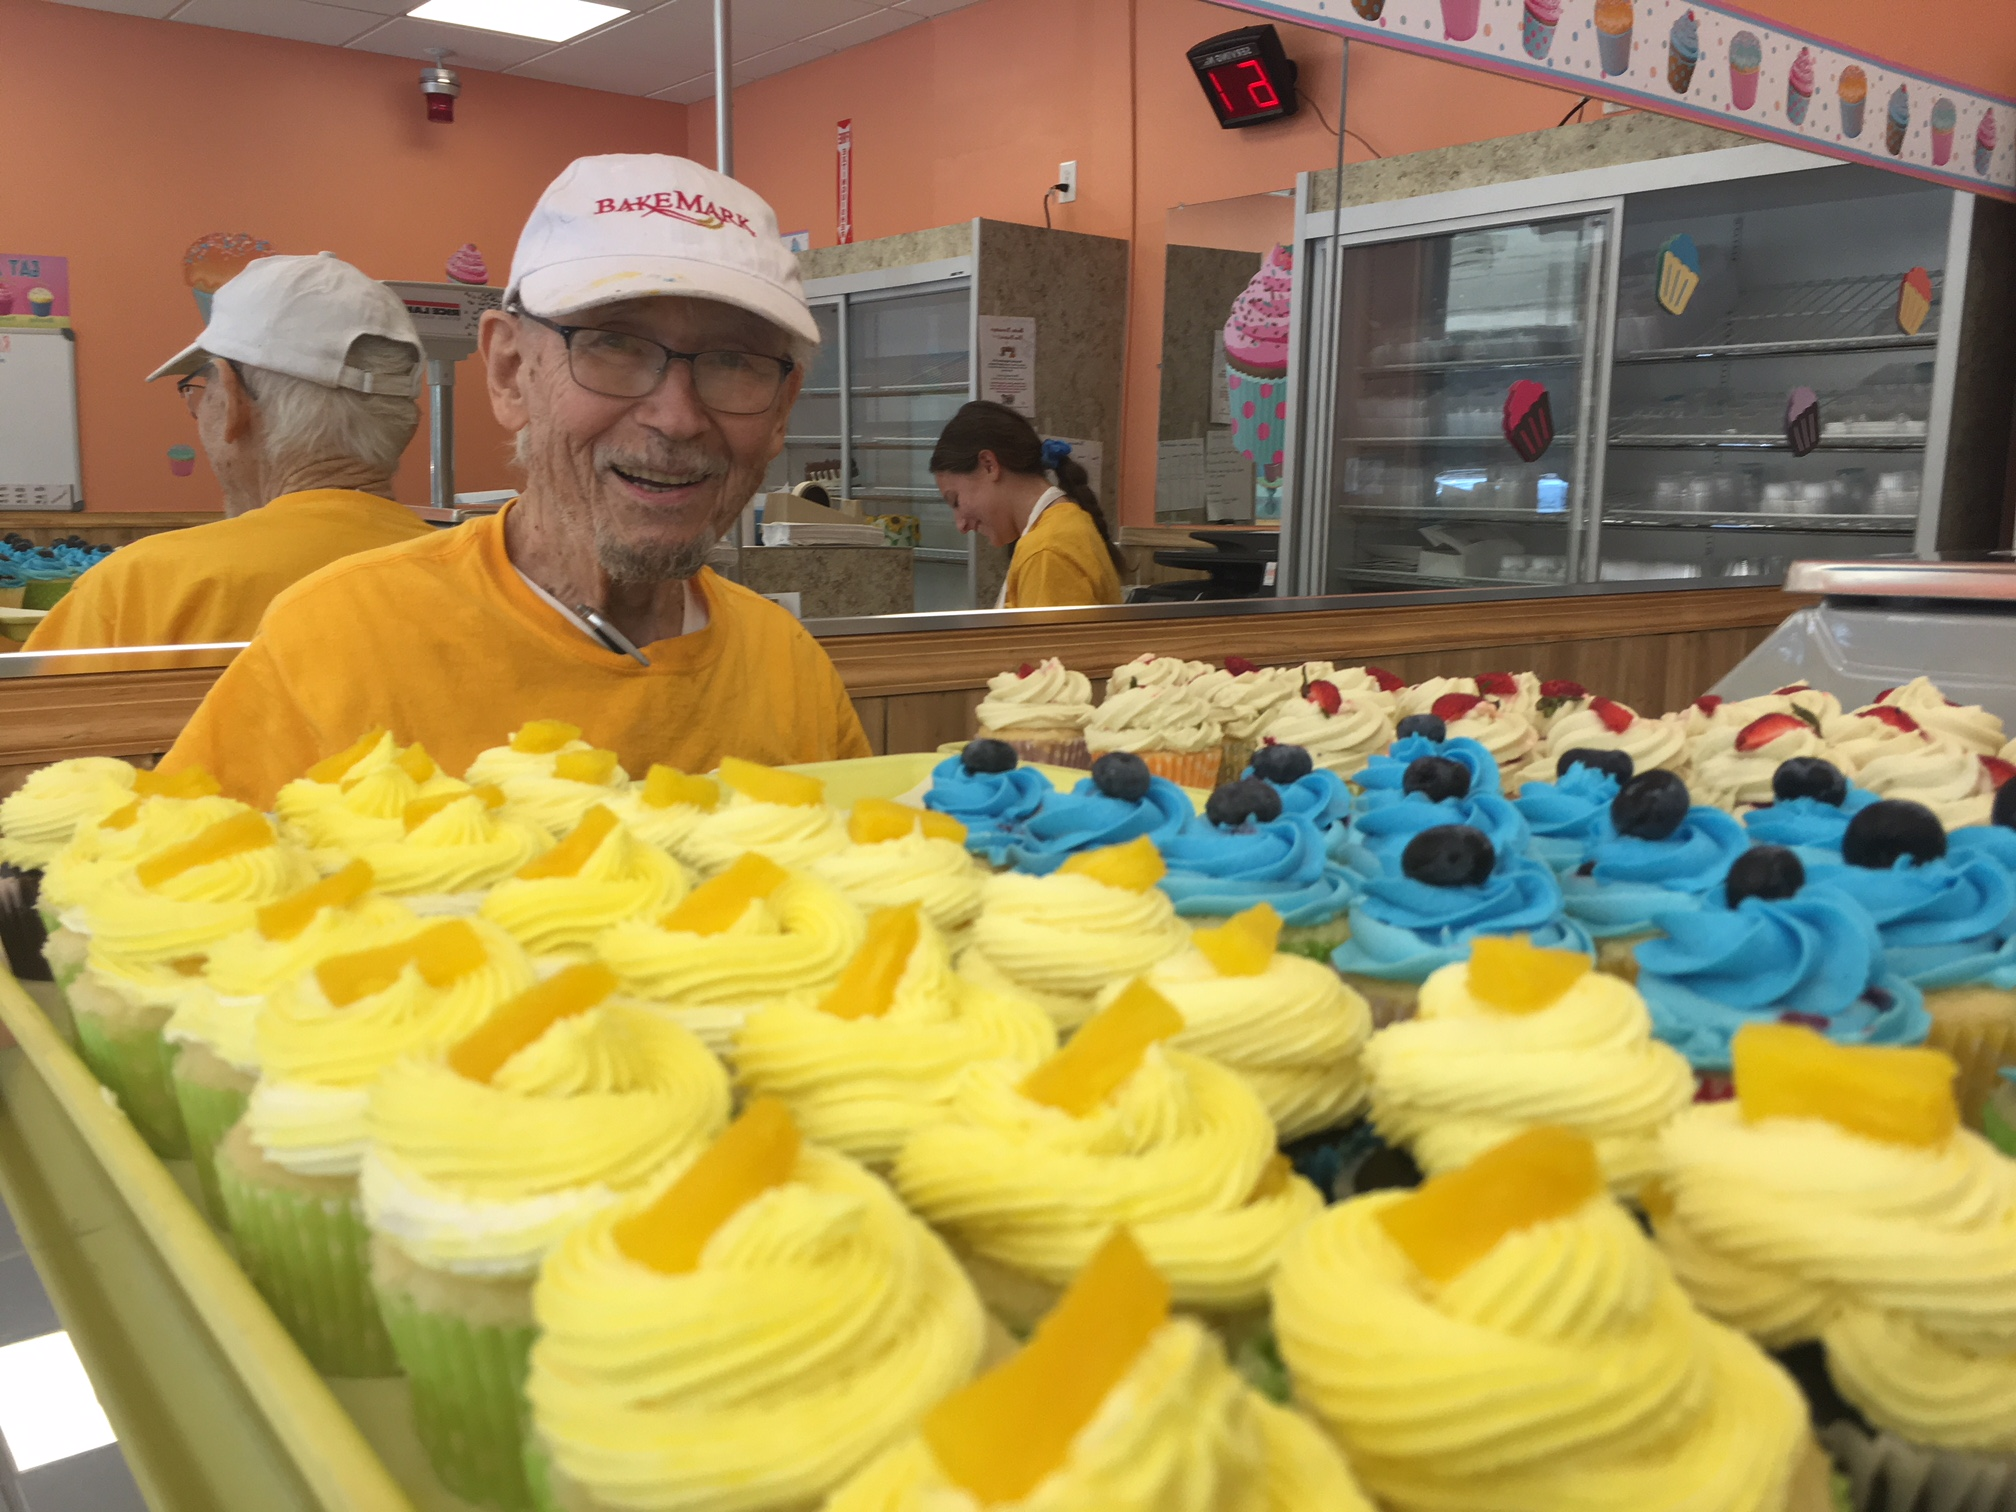 Meet the 93-year-old veteran who just opened up a boozy bakery